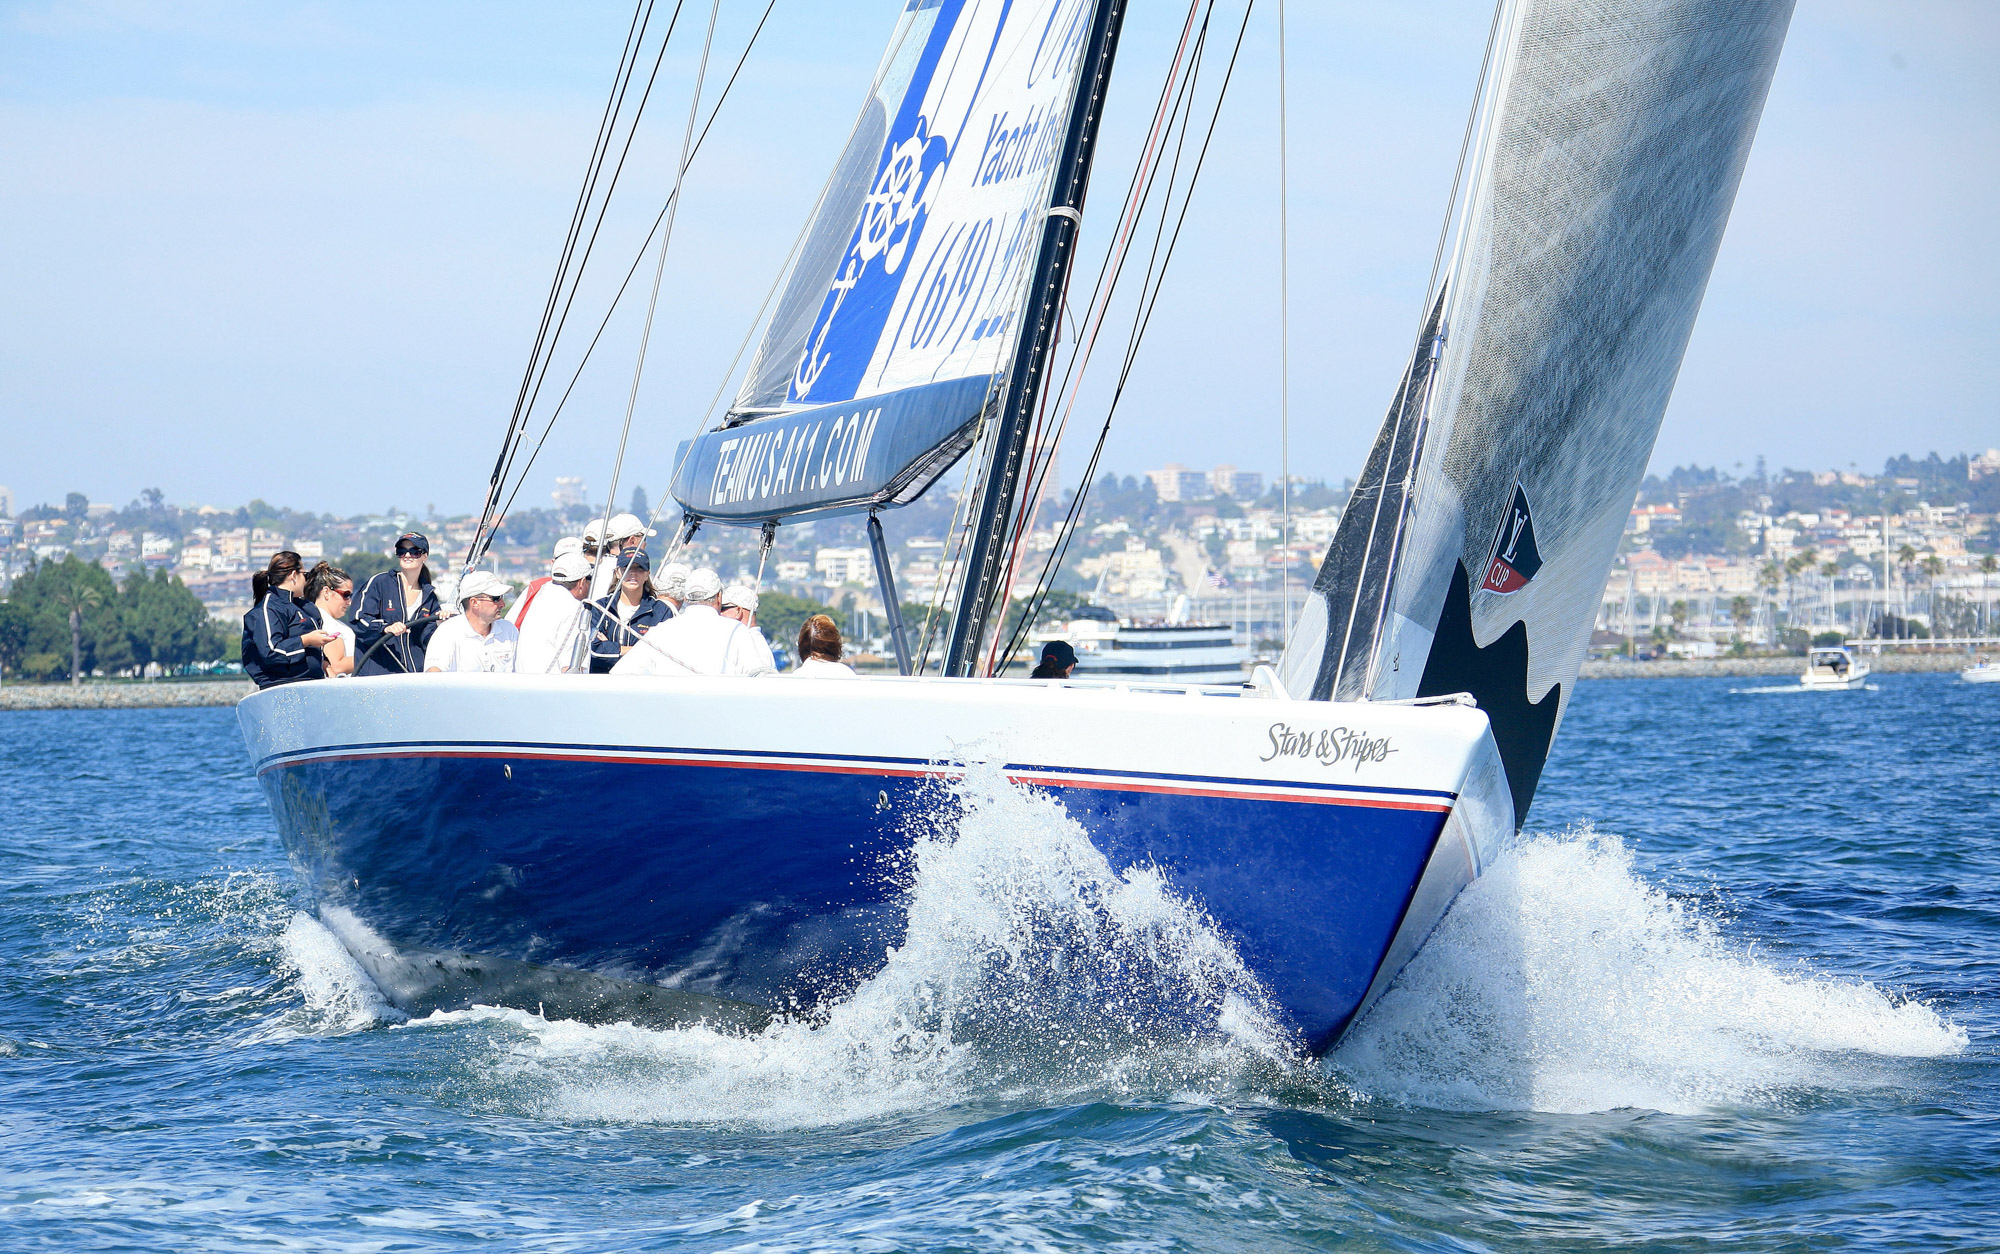 The Most EXCITING Sailing Experience on the LARGEST and FASTEST sailboat on San Diego Bay